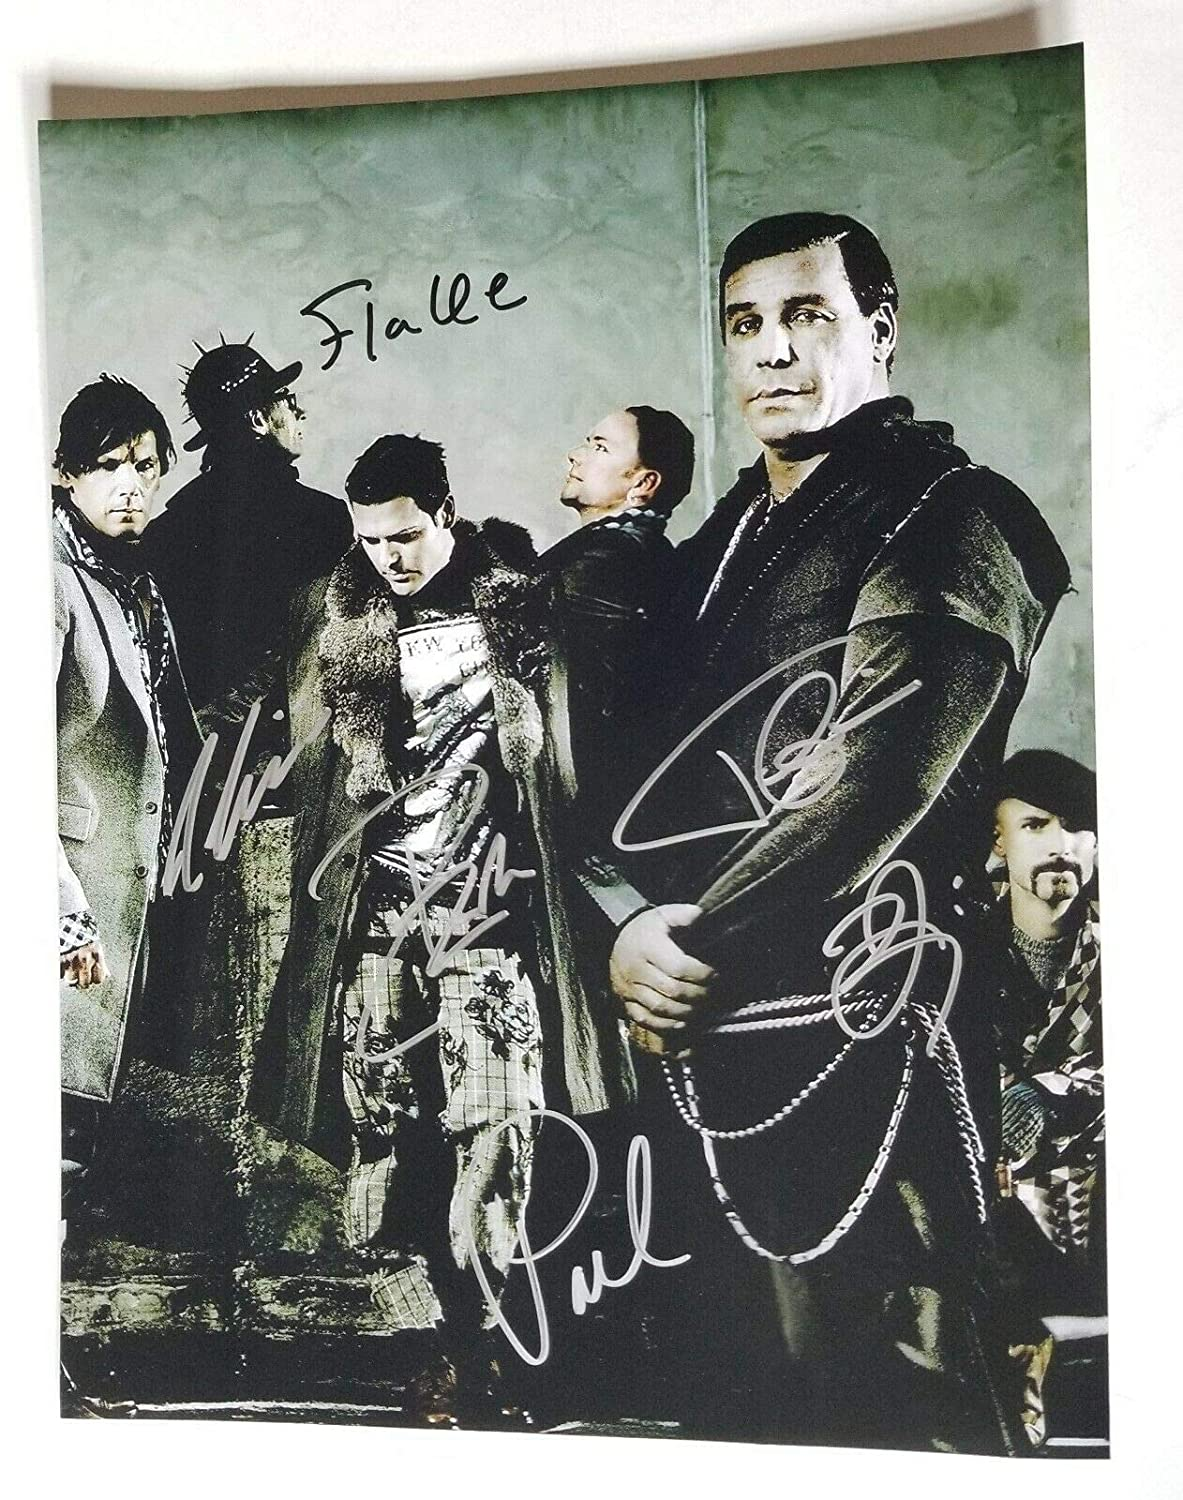 Rammstein REAL hand SIGNED 11x14